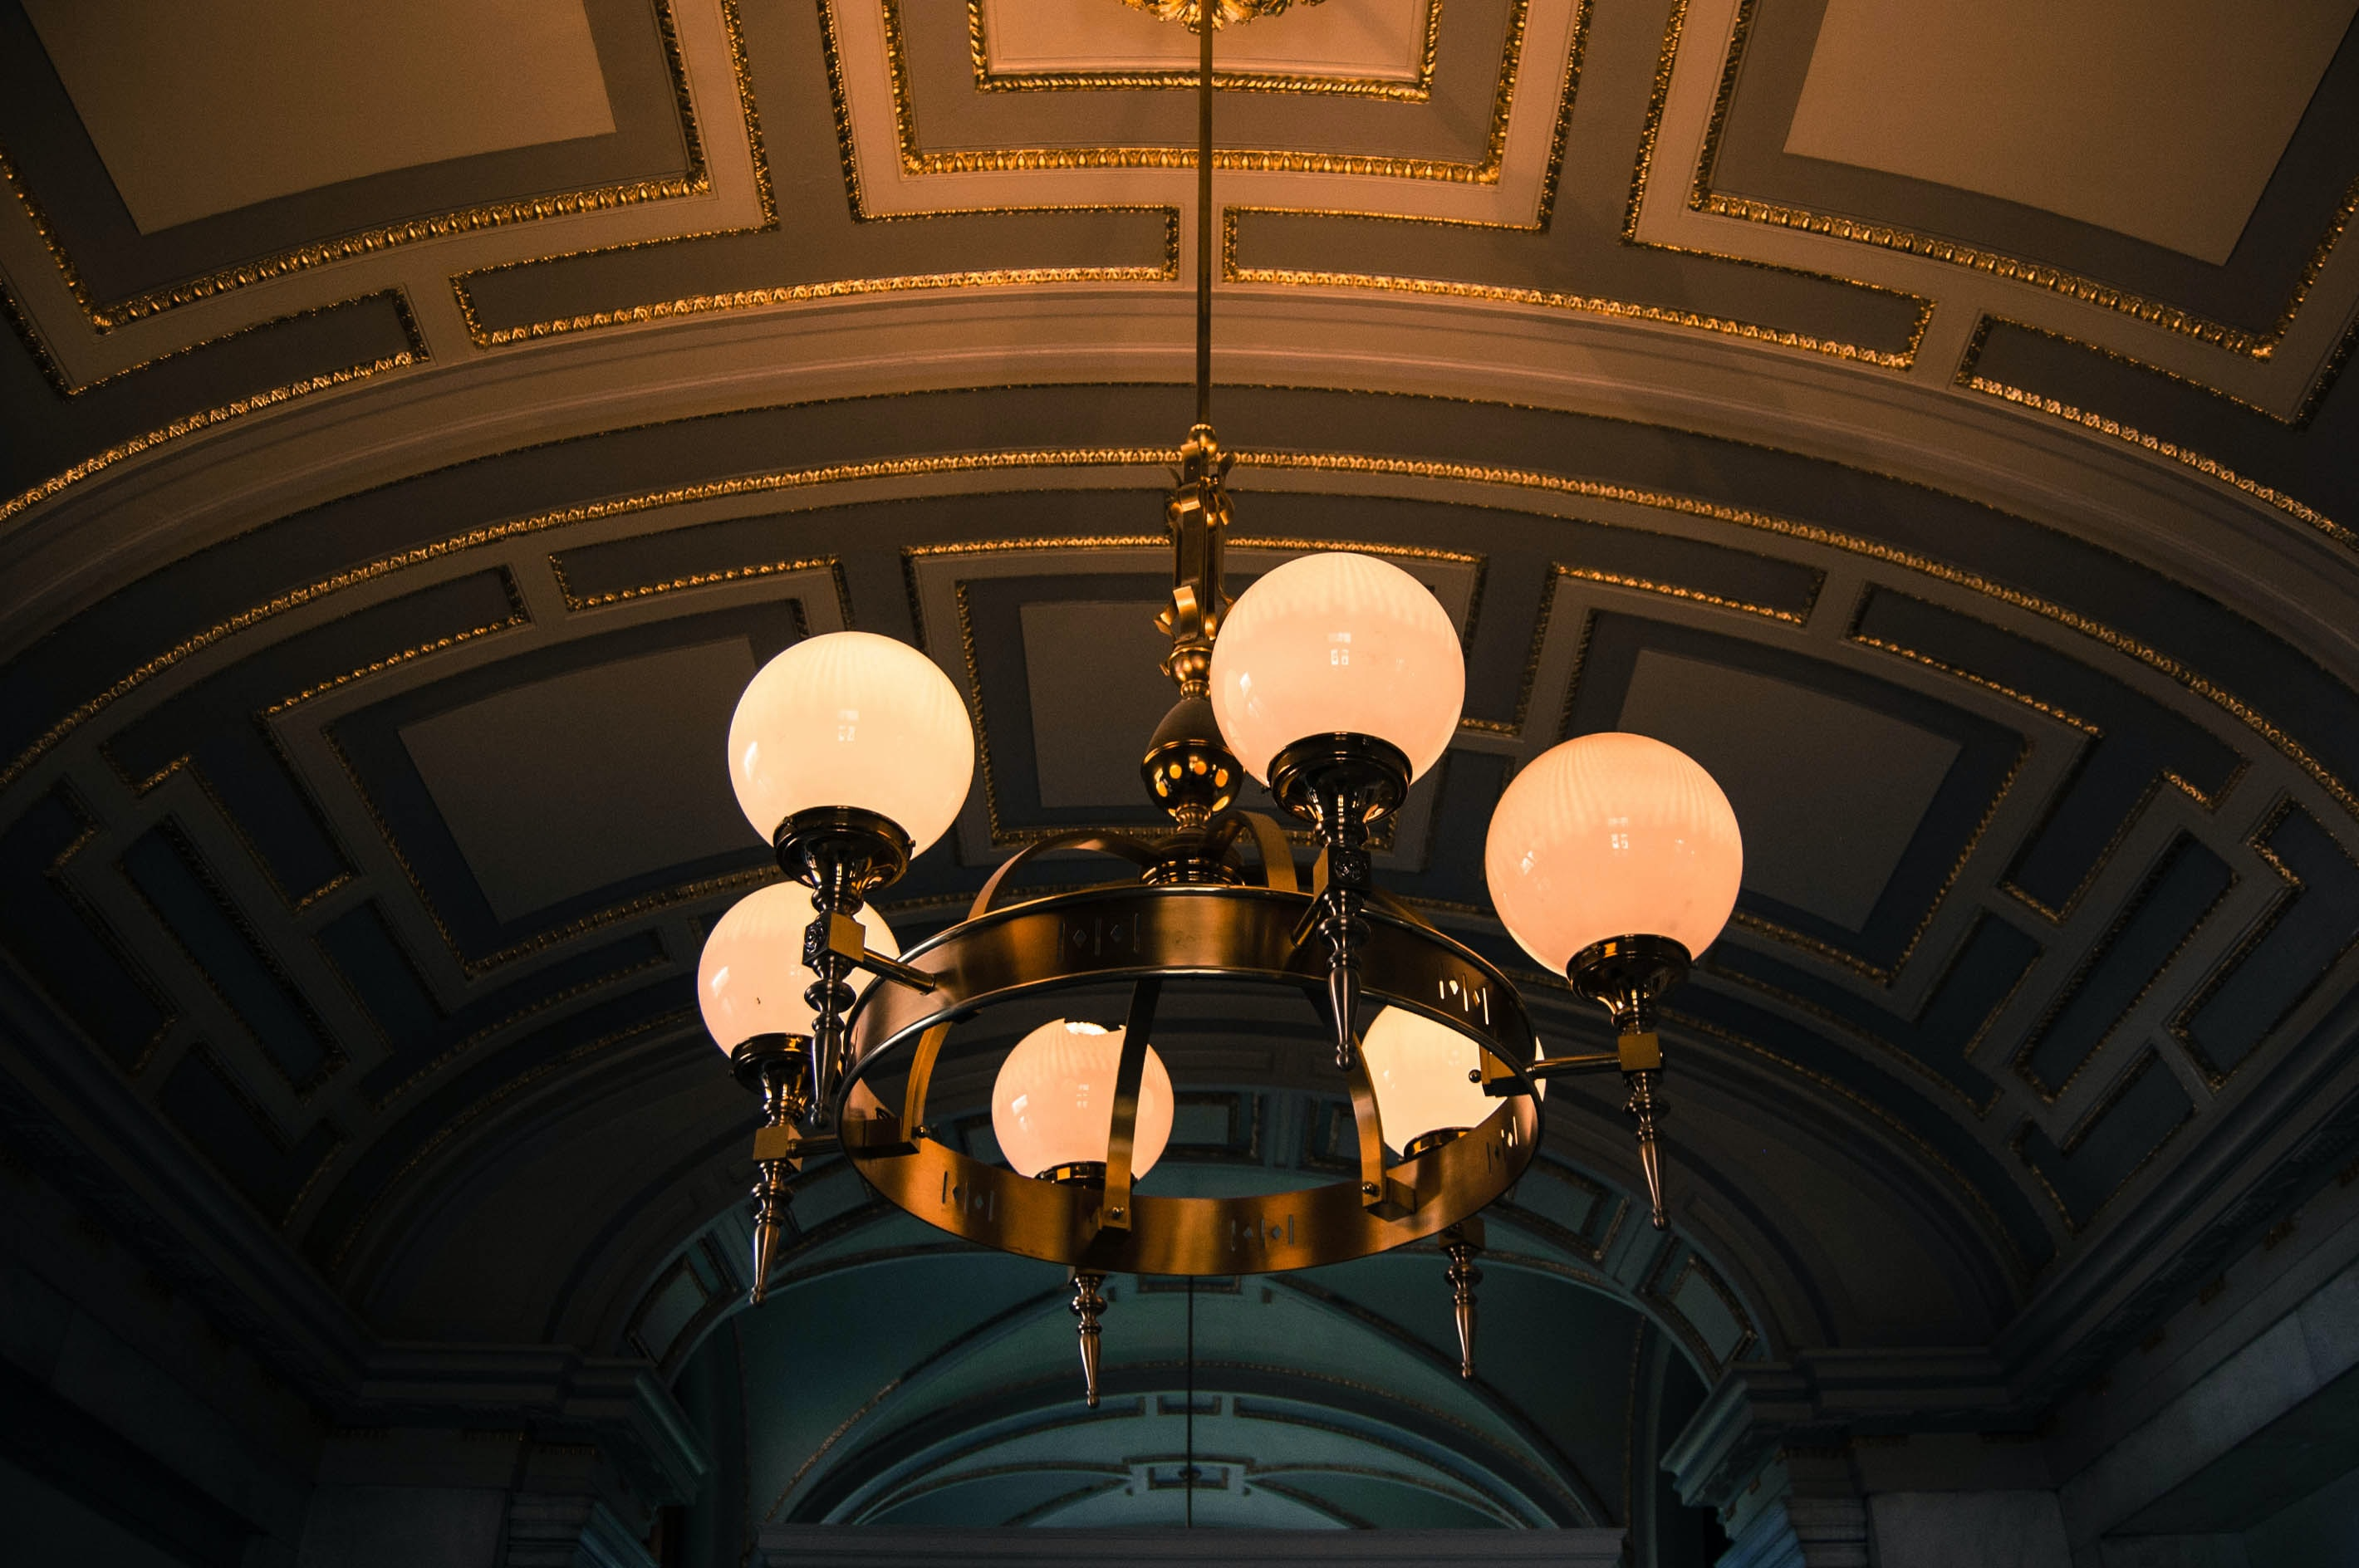 Incandescent globe bulbs on a gold chandelier hanging from an ornate ceiling